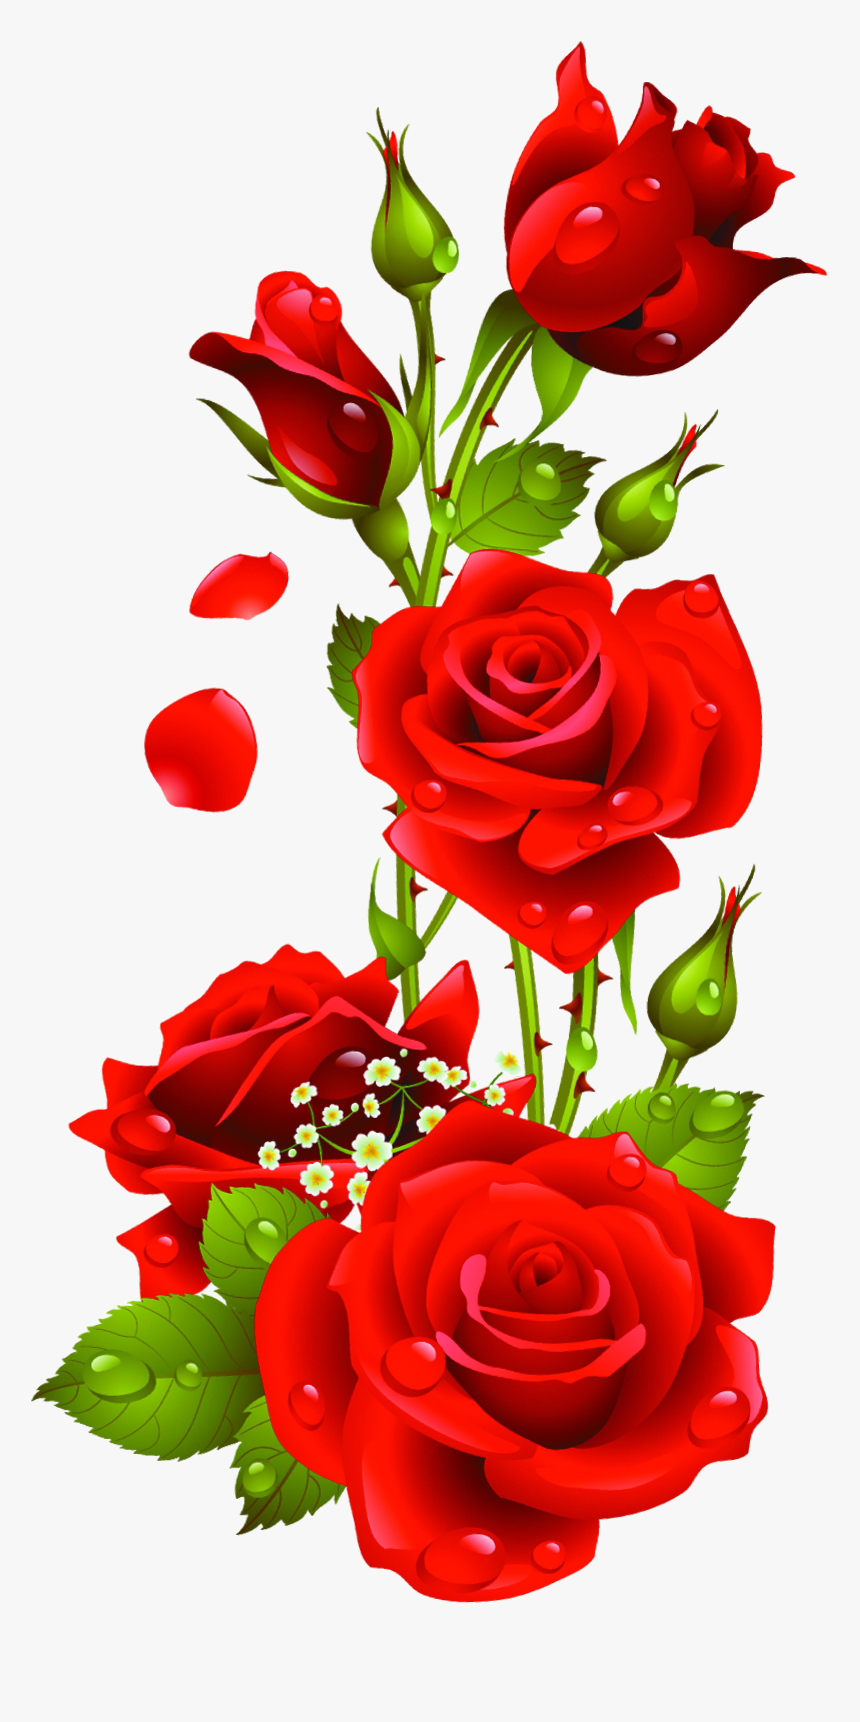 Transparent Beauty And The Beast Rose Clipart, HD Png Download, Free Download